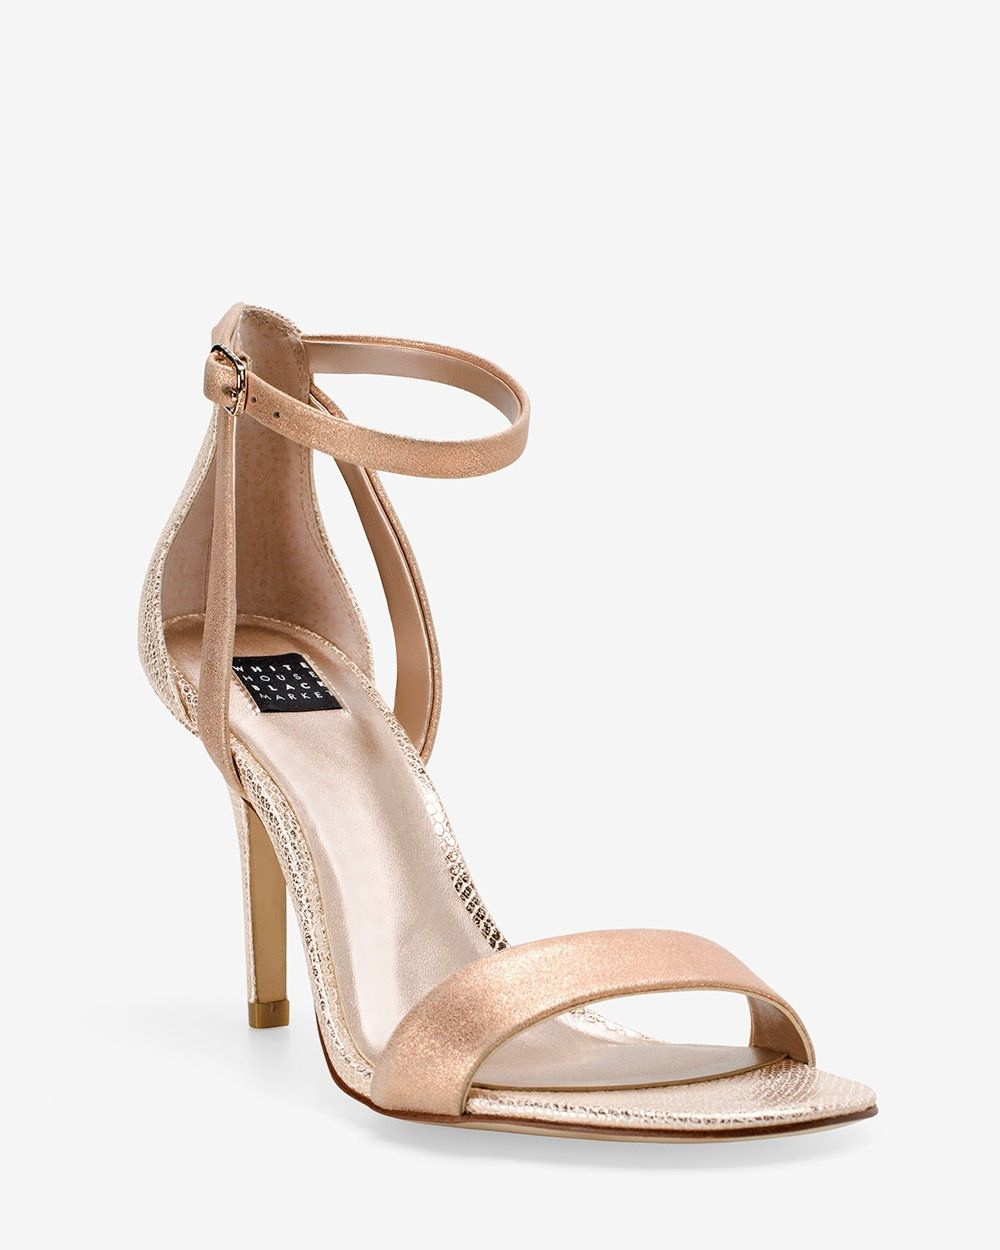 50 Heel Height 3 1 2 Only Size 11 White House Black Market Rose Gold Strappy Mid Heel Sandals Rose Gold Pinterest Sandals Rose And White House Bla